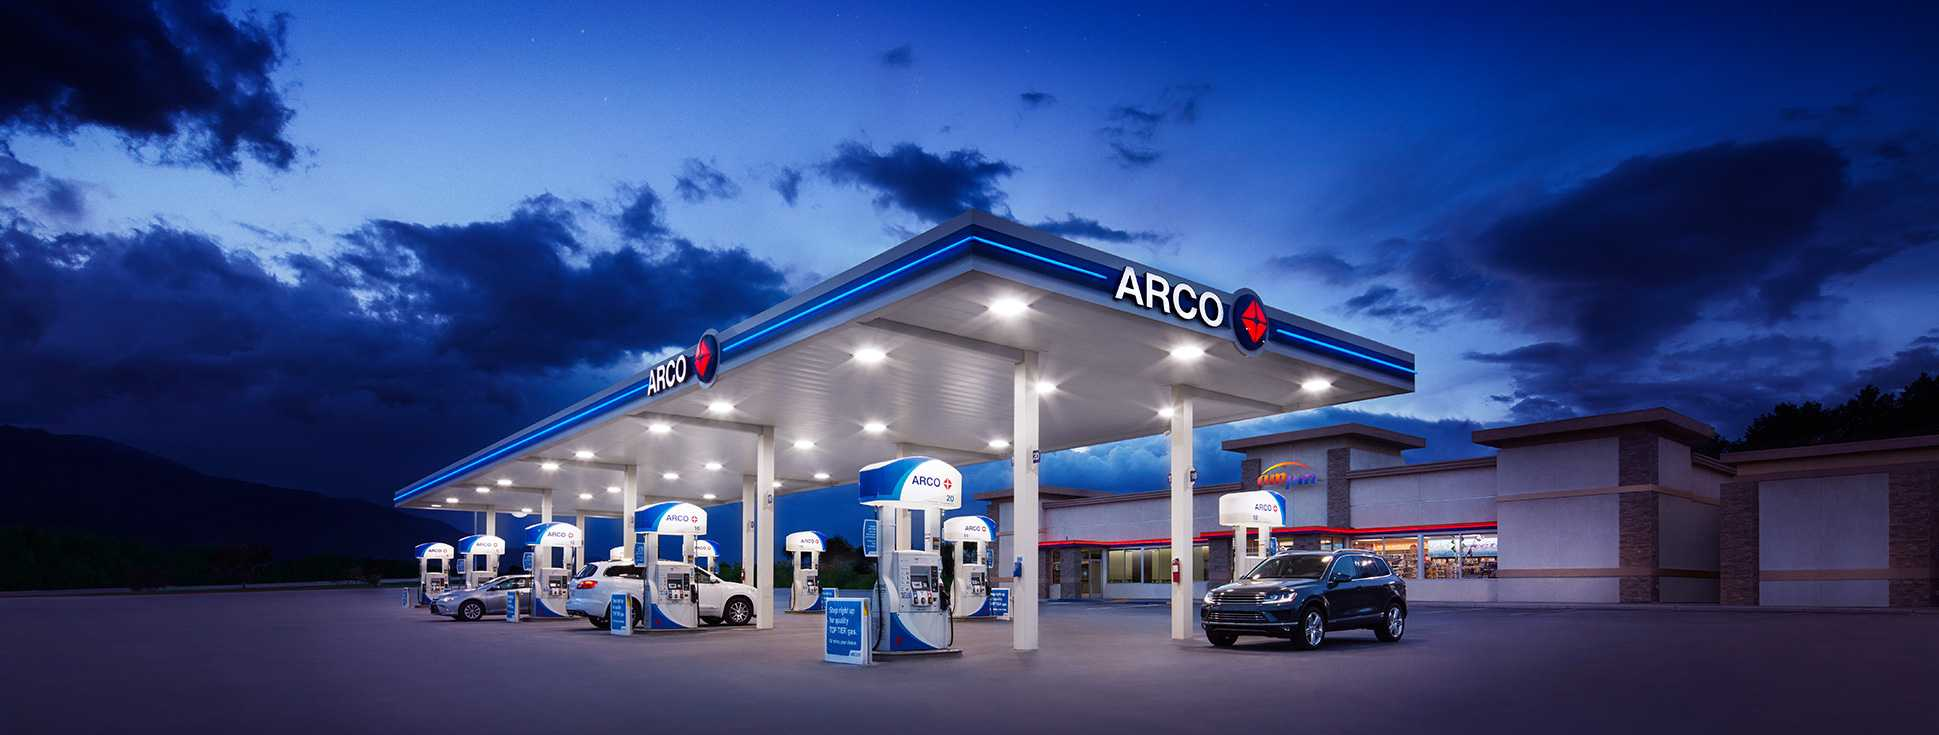 Find Nearest Gas Station >> AMPM Arco Near Me | United States Maps